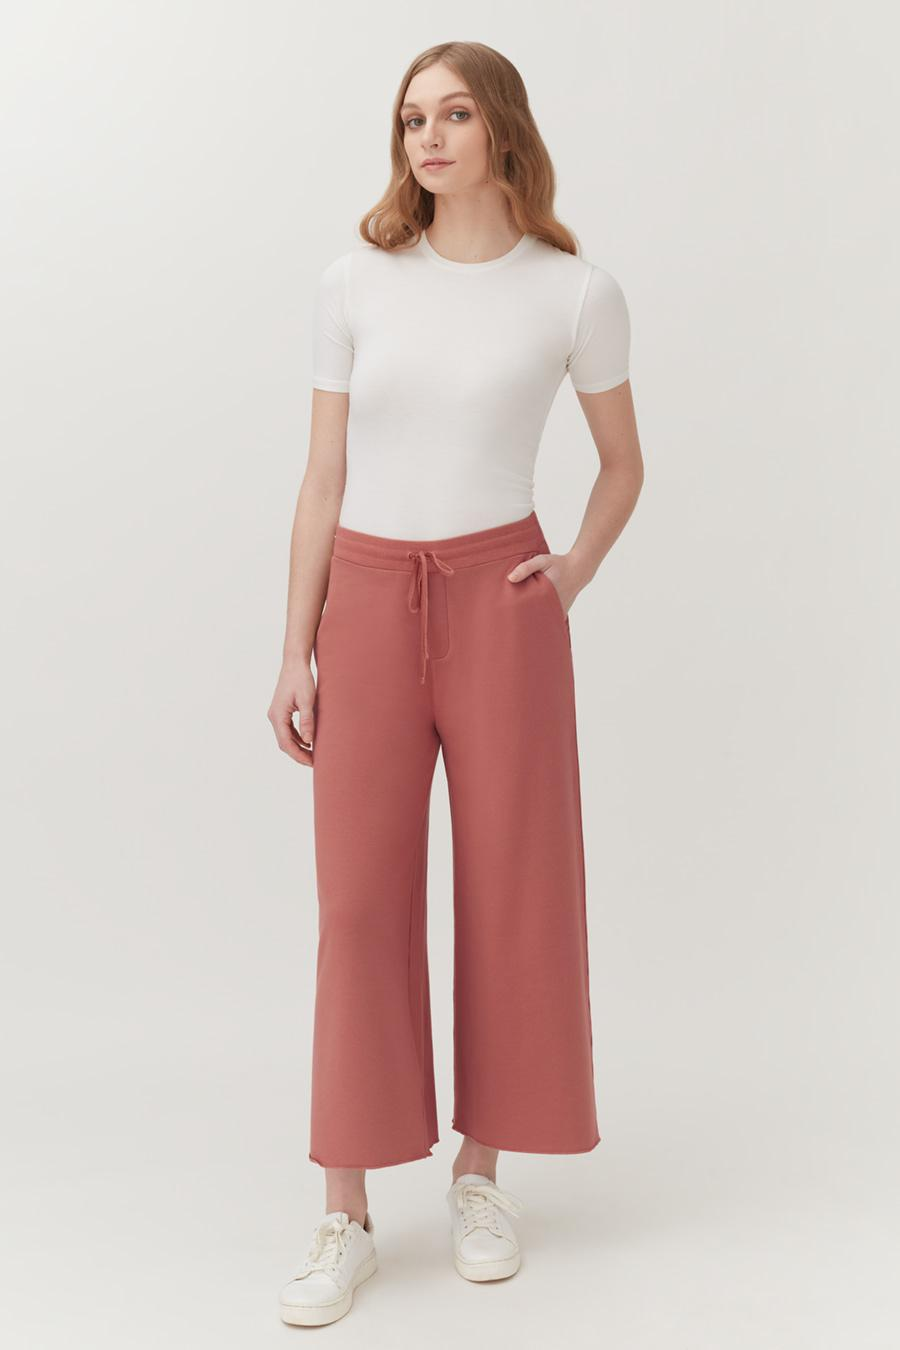 Women's French Terry Wide-Leg Cropped Pant in Passion Fruit   Size: 1